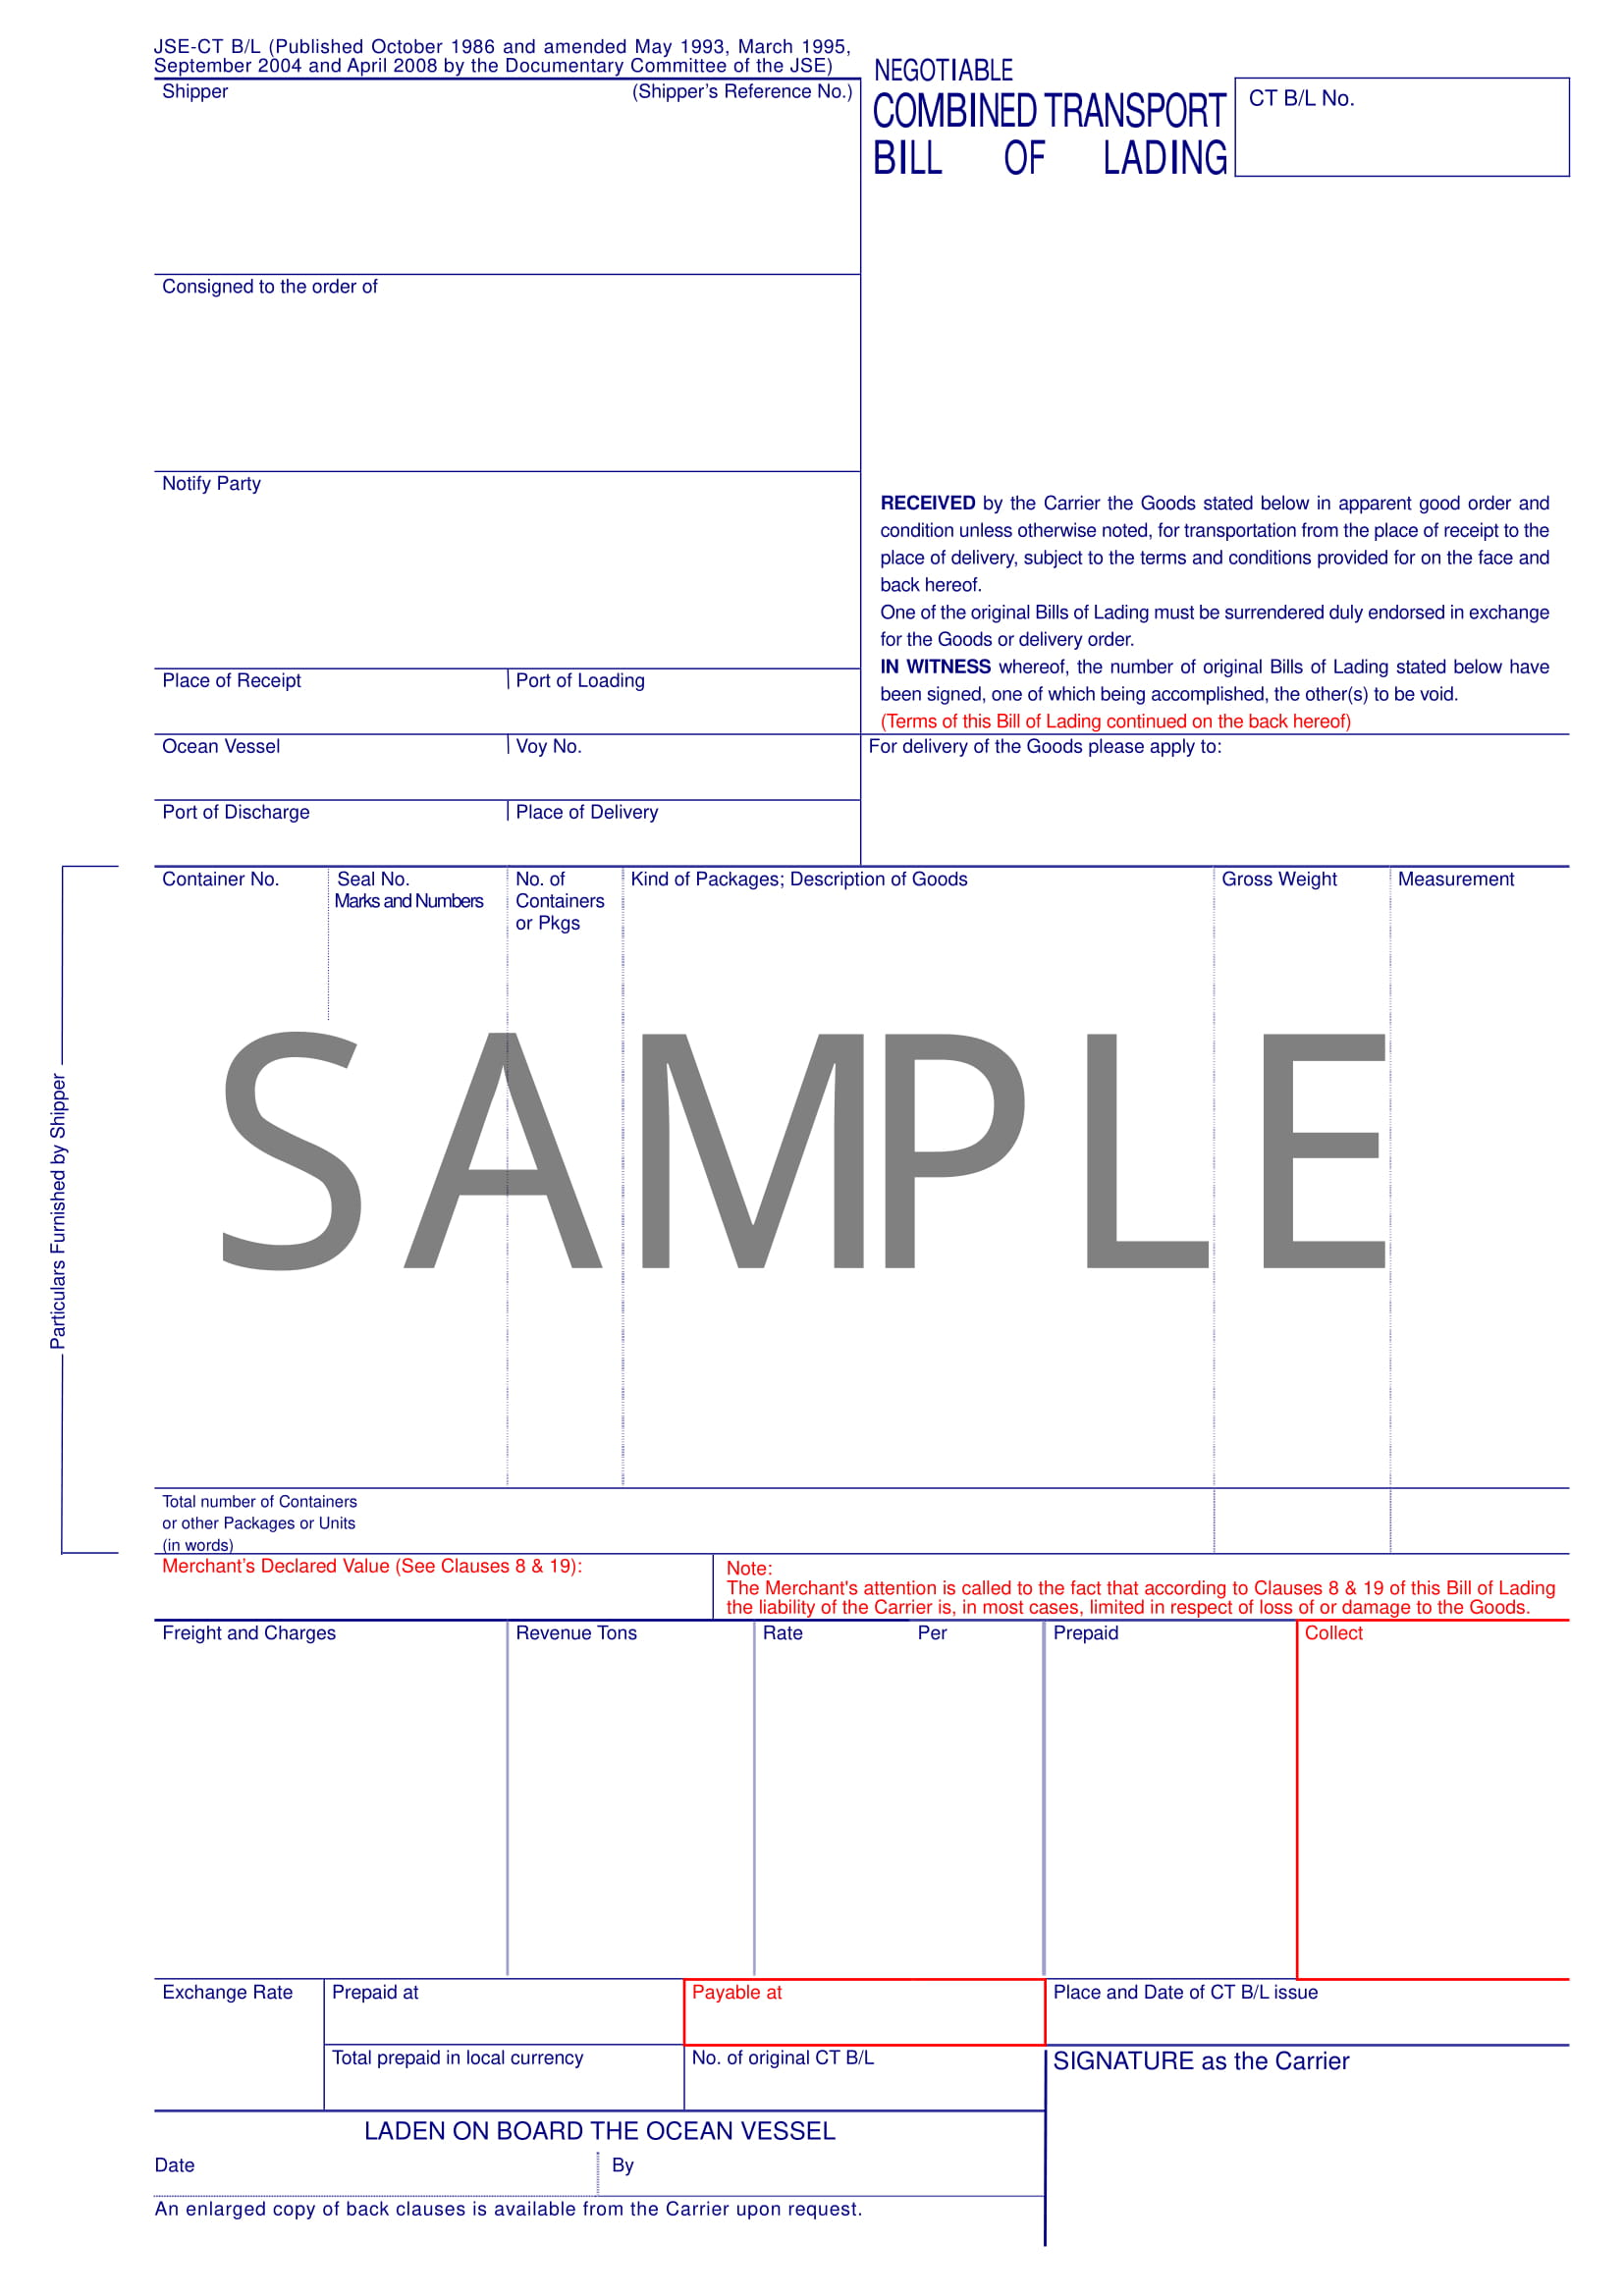 negotiable combined transport bill of lading form example 1